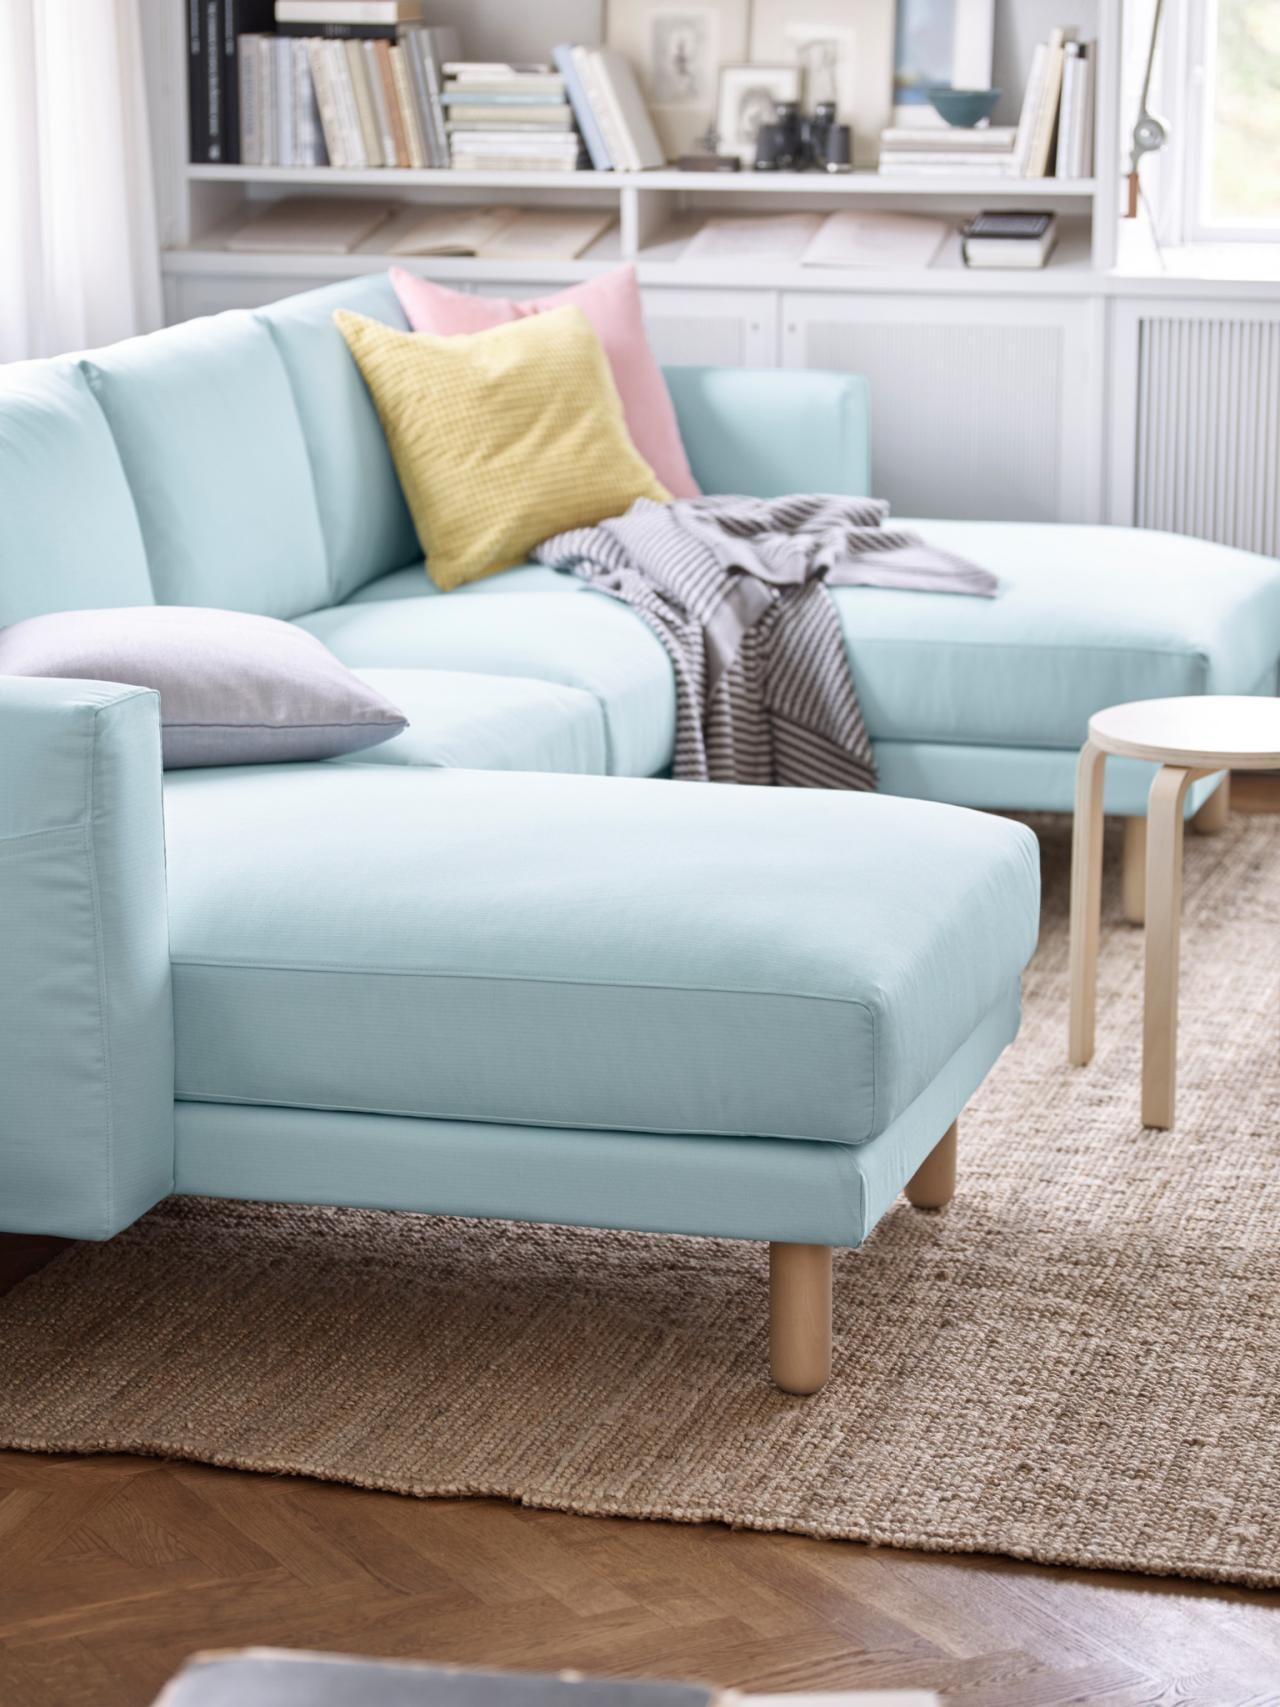 5 Apartment Sized Sofas That Are Lifesavers | Hgtv's Decorating With Apartment Sectional Sofa With Chaise (View 7 of 15)